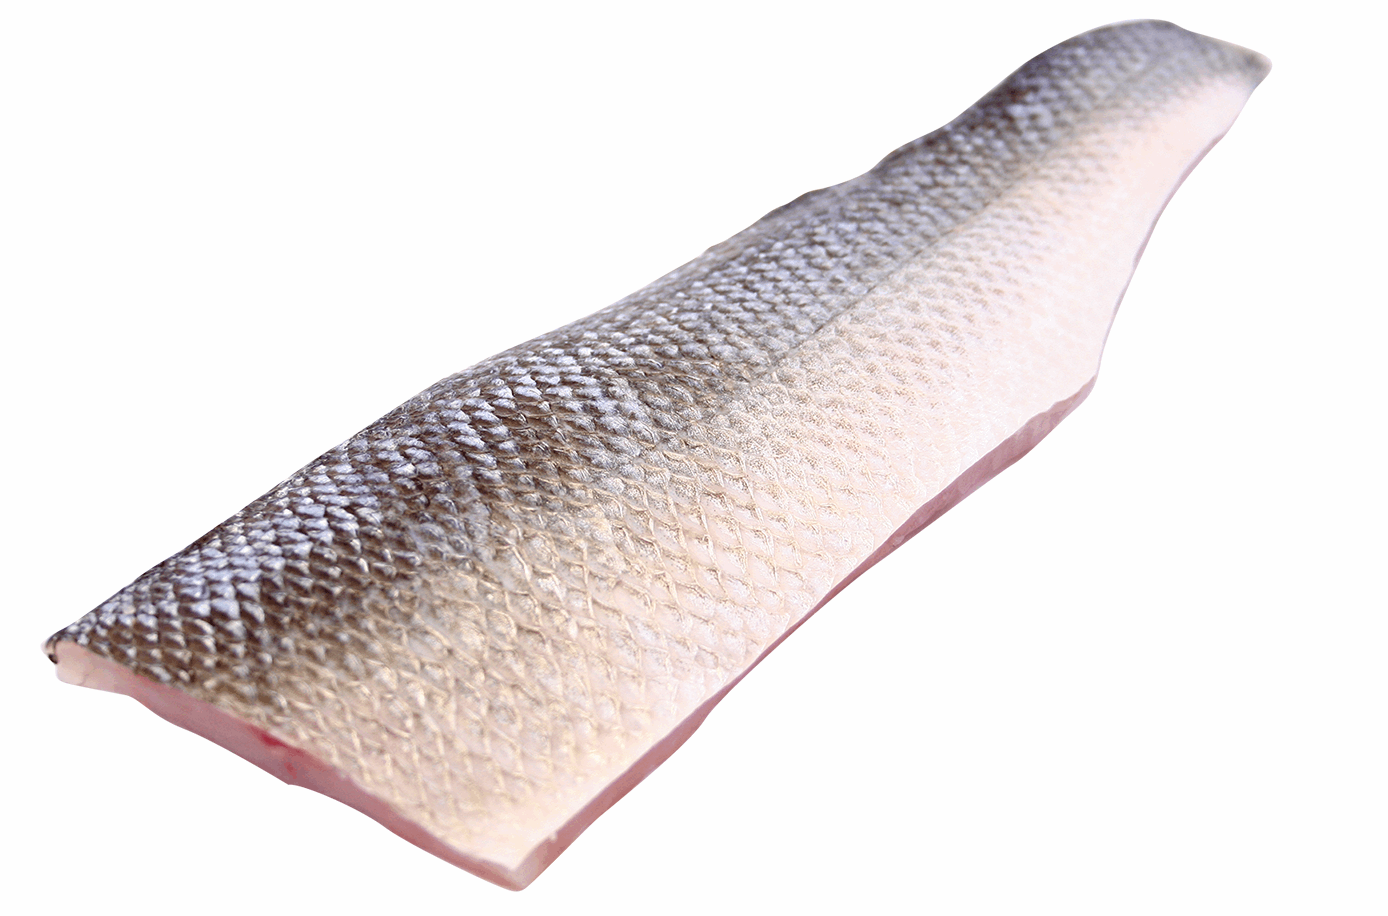 Productafbeelding WILD SEA BASSFILLET SKIN ON SCALES OFF 2KG UP